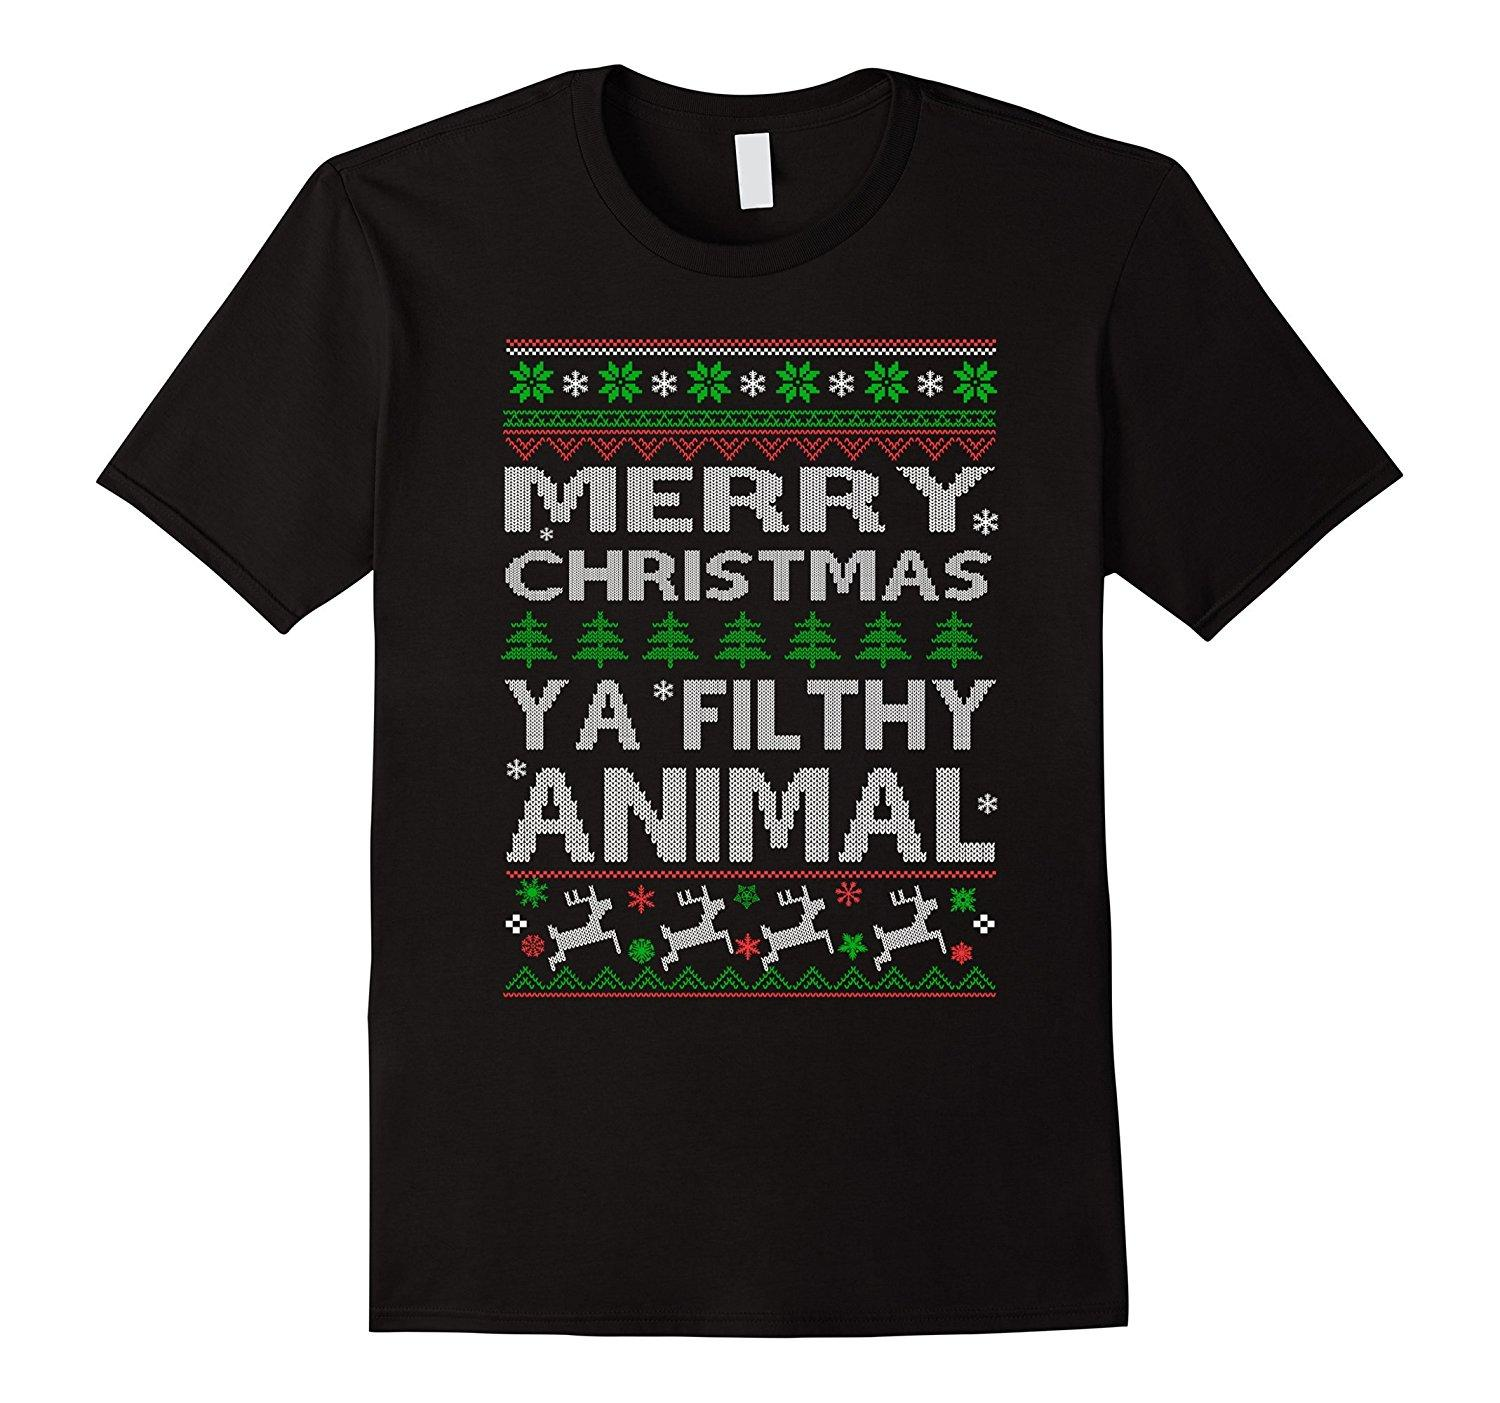 27e79403 Merry Christmas Ya Filthy Animal Funny T Shirt High Quality Men T Shirts  Top Tee Men T Shirt Lowest Price 100 % Cotton Awesome T Shirts Online A T  Shirts ...